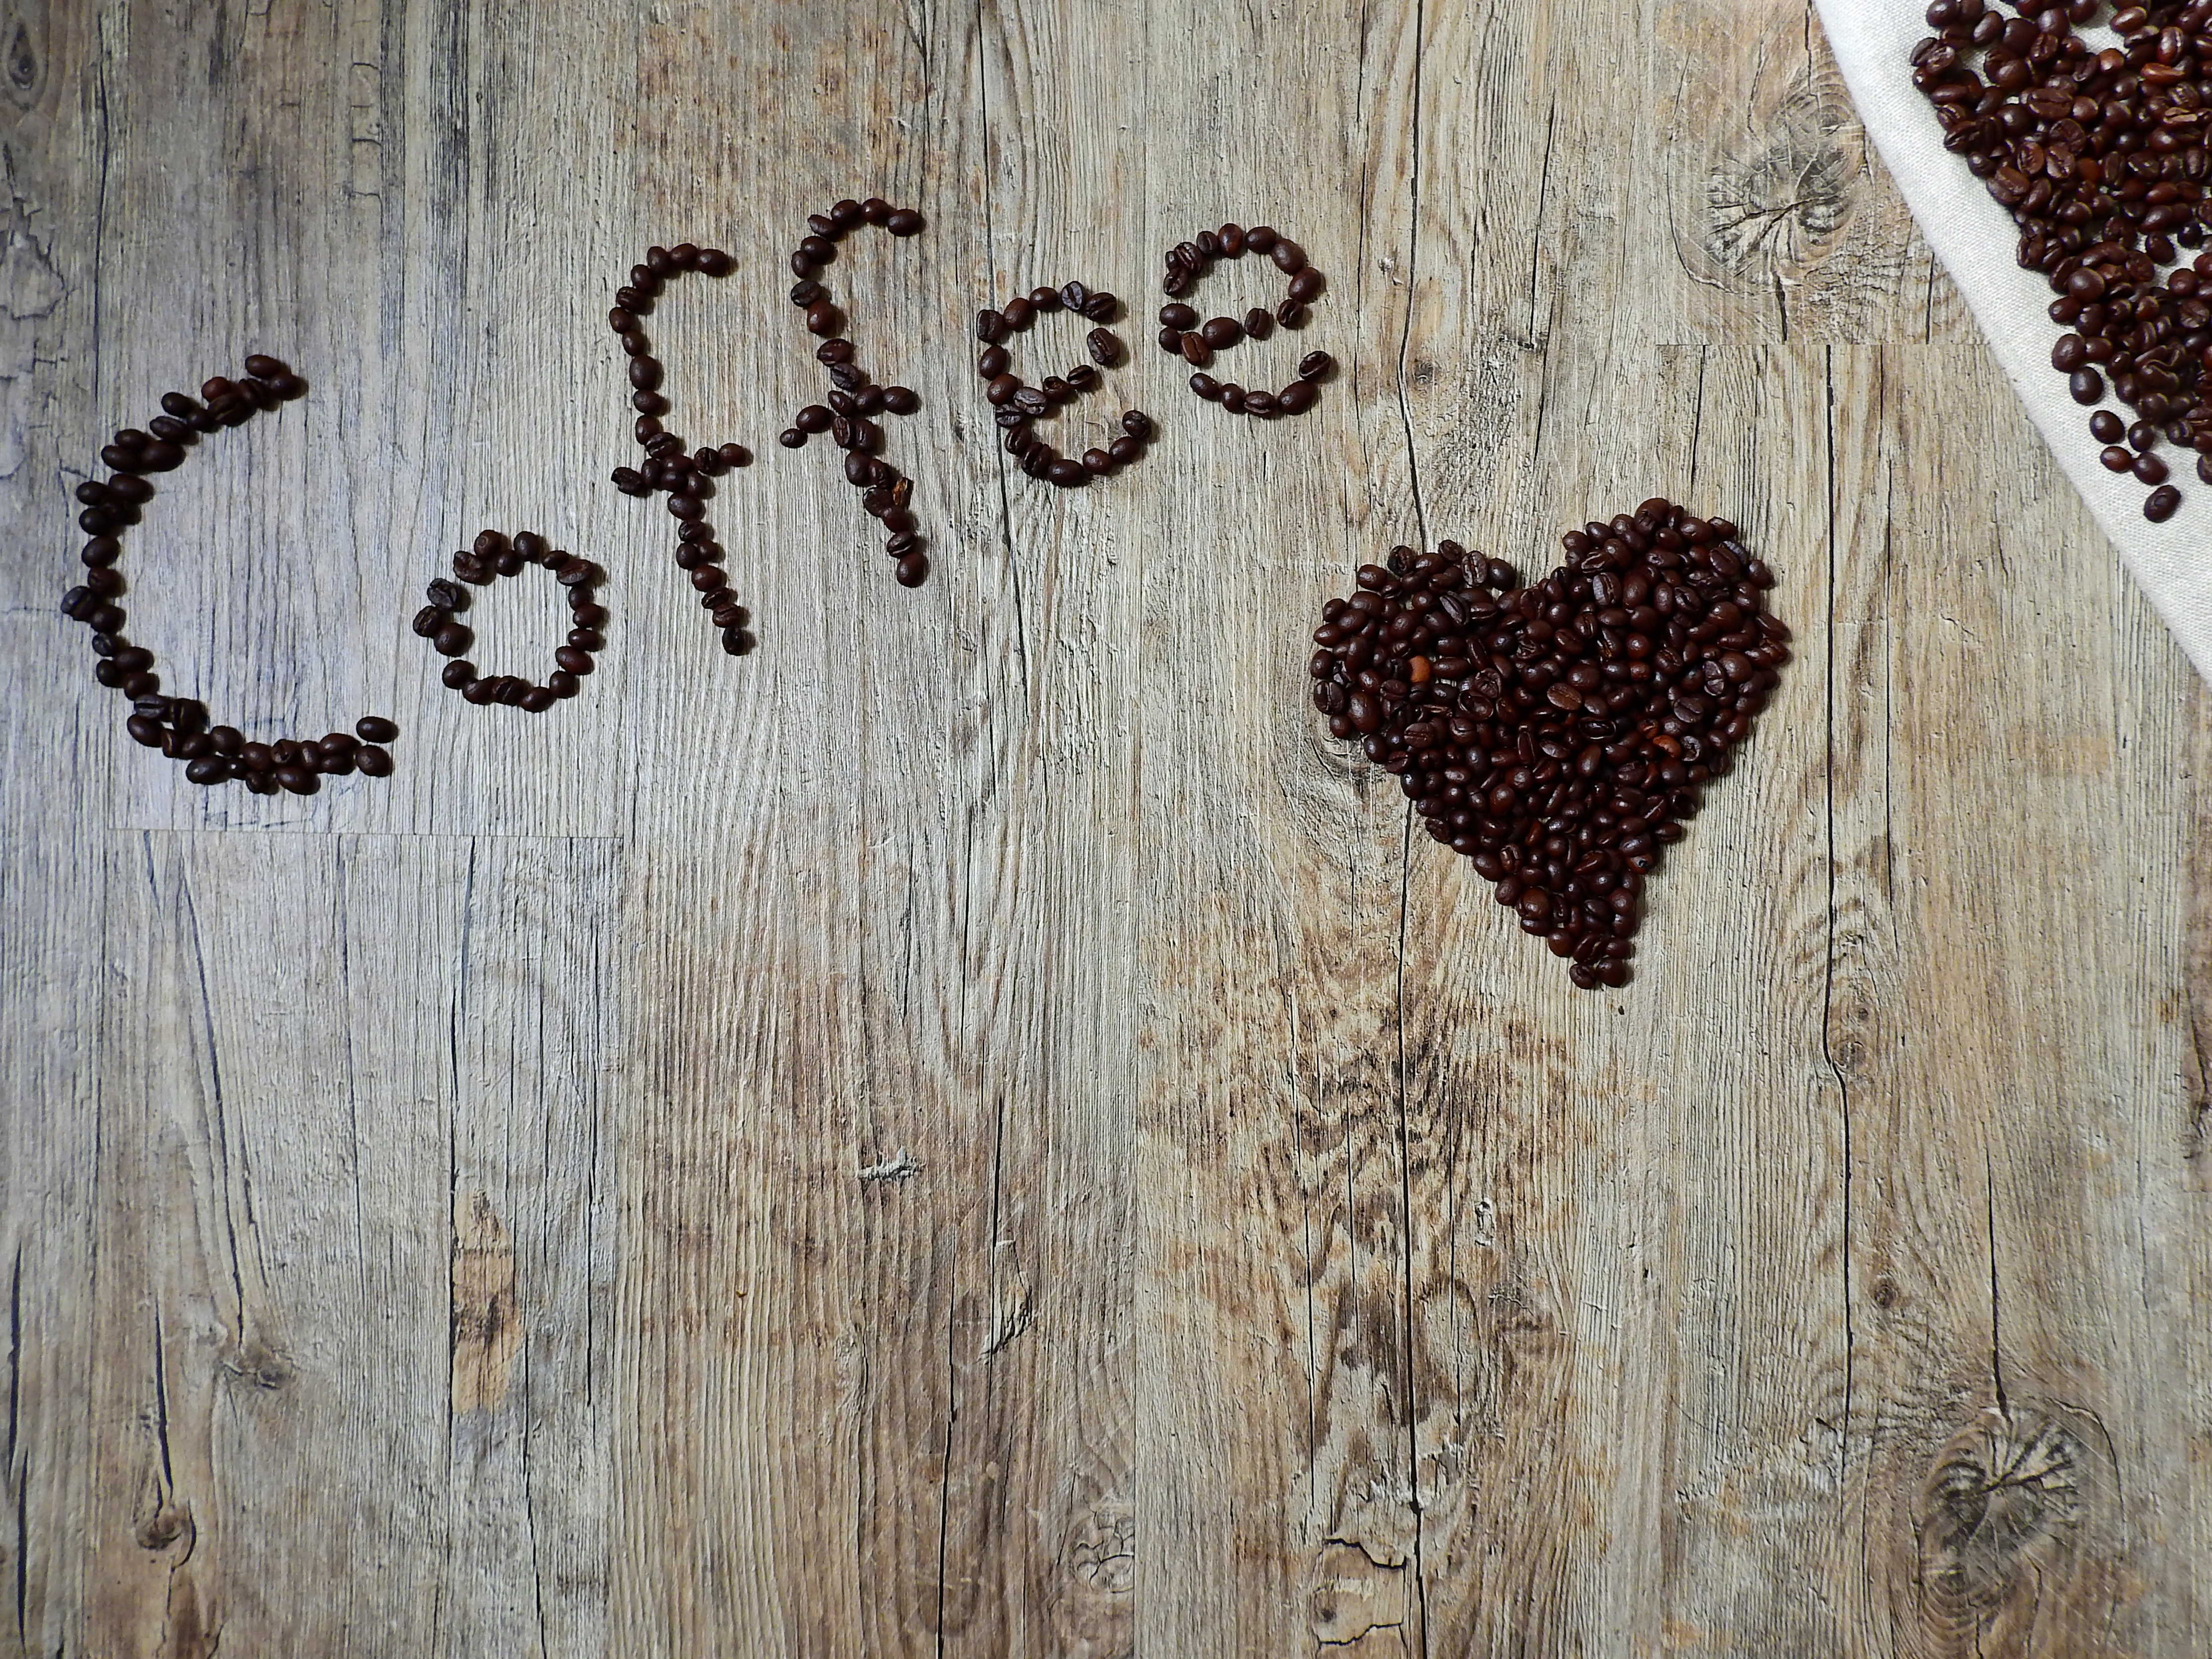 Caffeine is good for the heart.